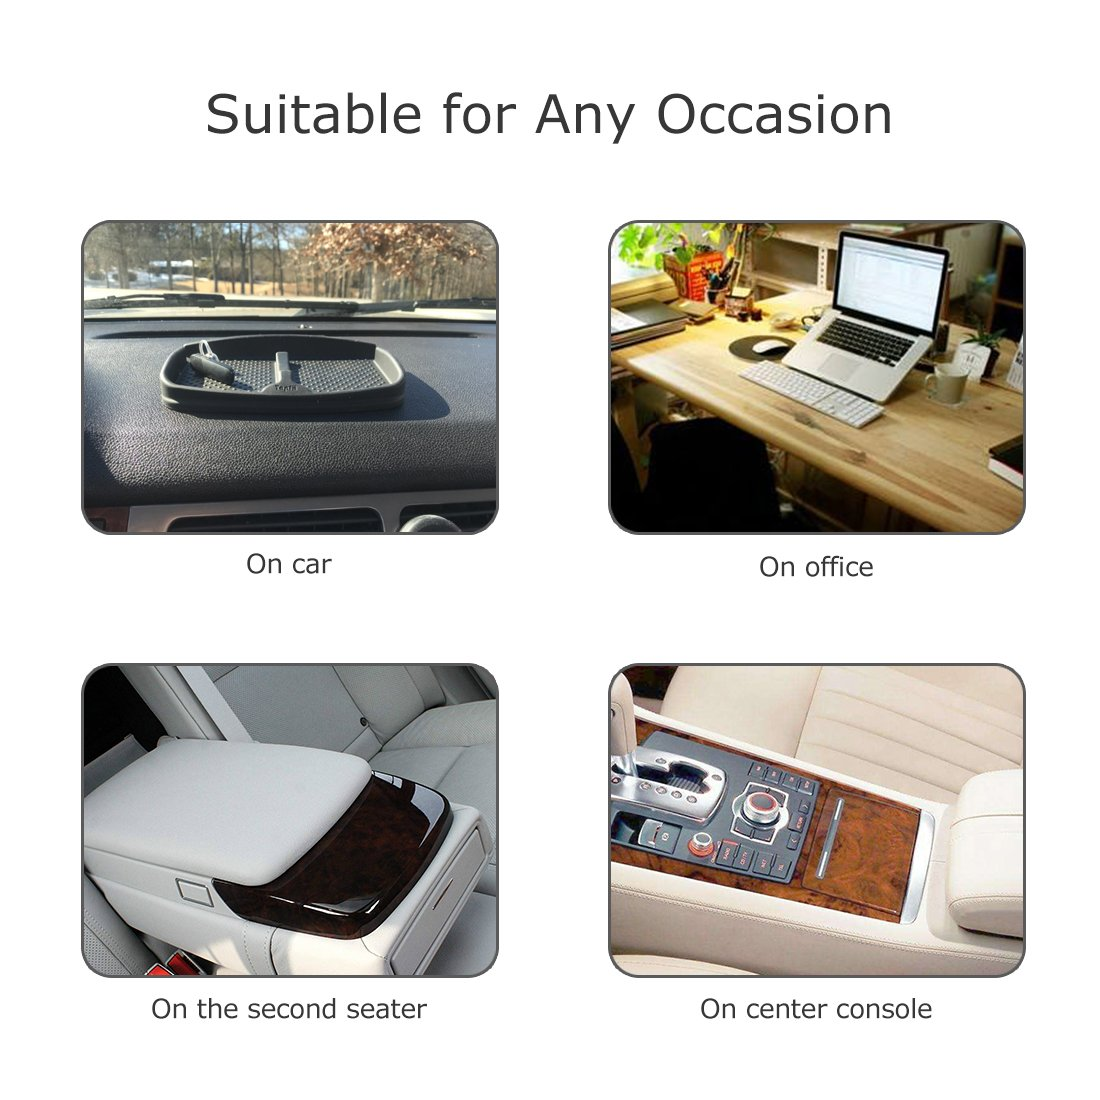 Anti-Slip Cell Phone Pad Universal for Car Dashboard Non-Slide Silicone Rubber Gel Mat Cell Phone Holder for Smartphone X//8//7 Plus Galaxy Note 8 S9 S8 Plus or GPS Devices Sunglasses Cards Coins